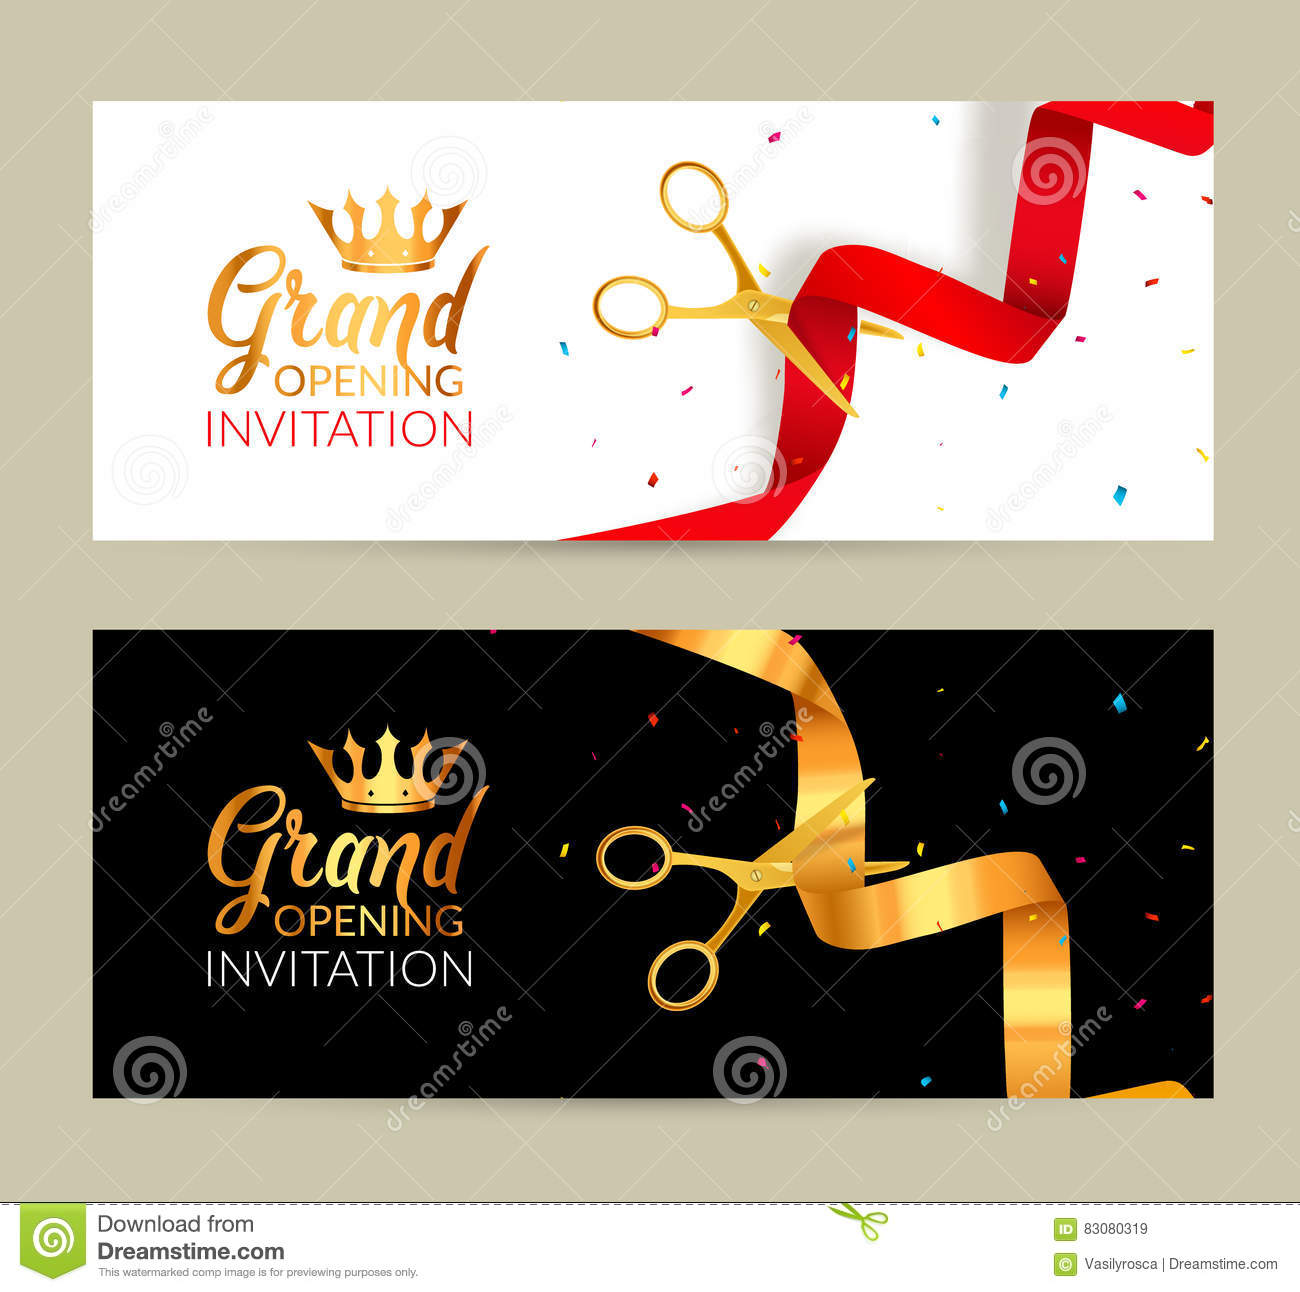 Banniere D Invitation D Ouverture Officielle Le Ruban D Or Et Le